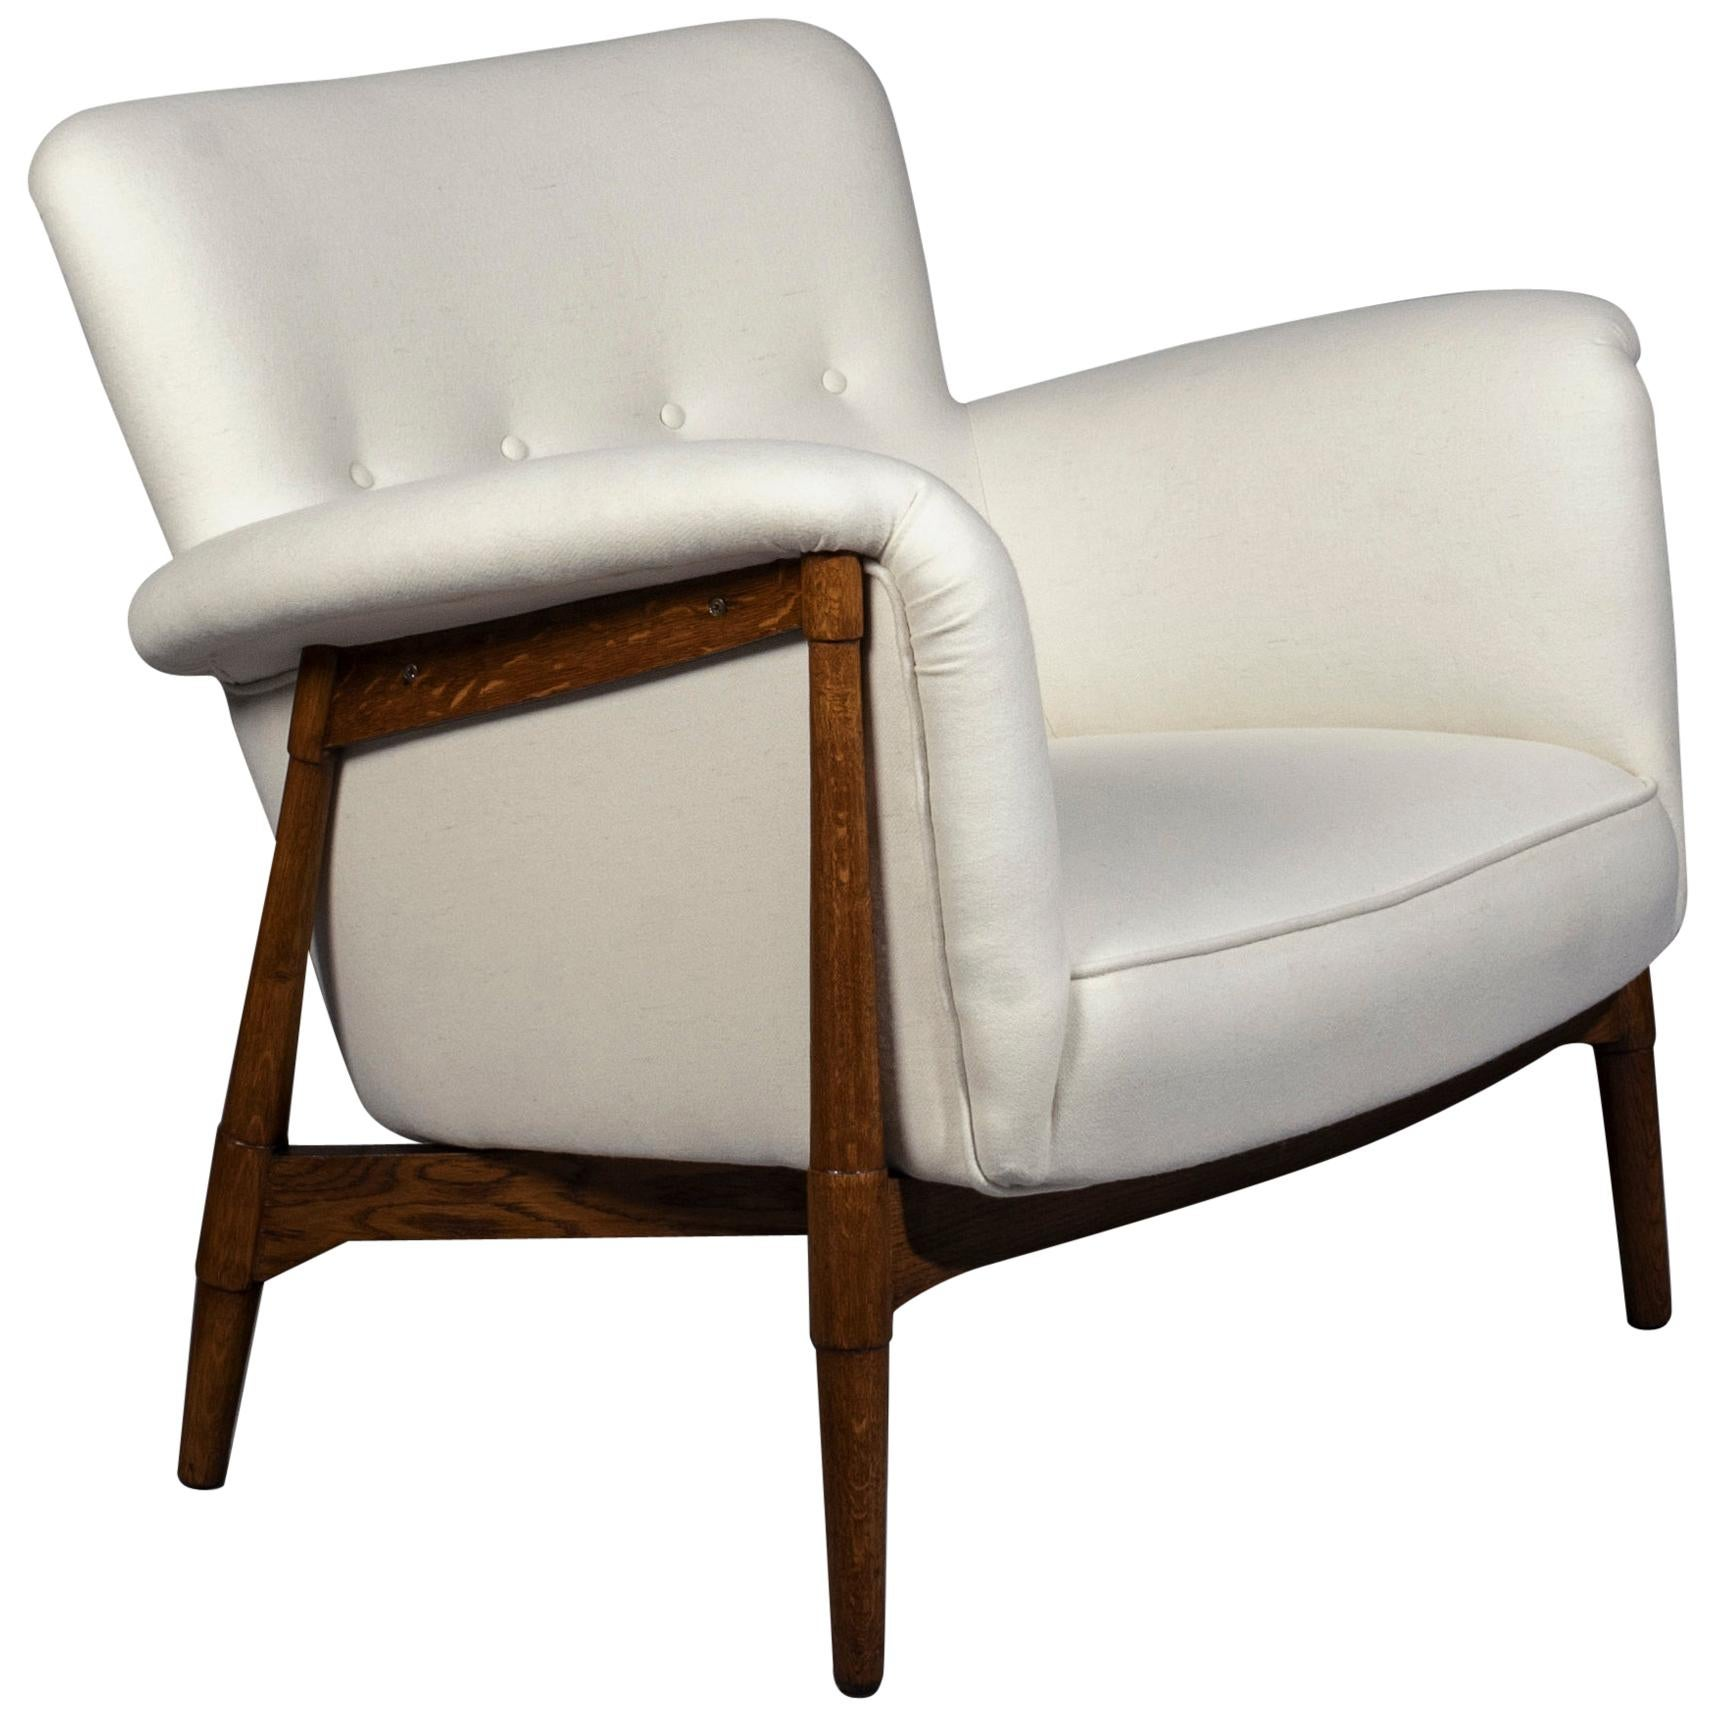 Ib Kofod-Larsen Lounge Chair